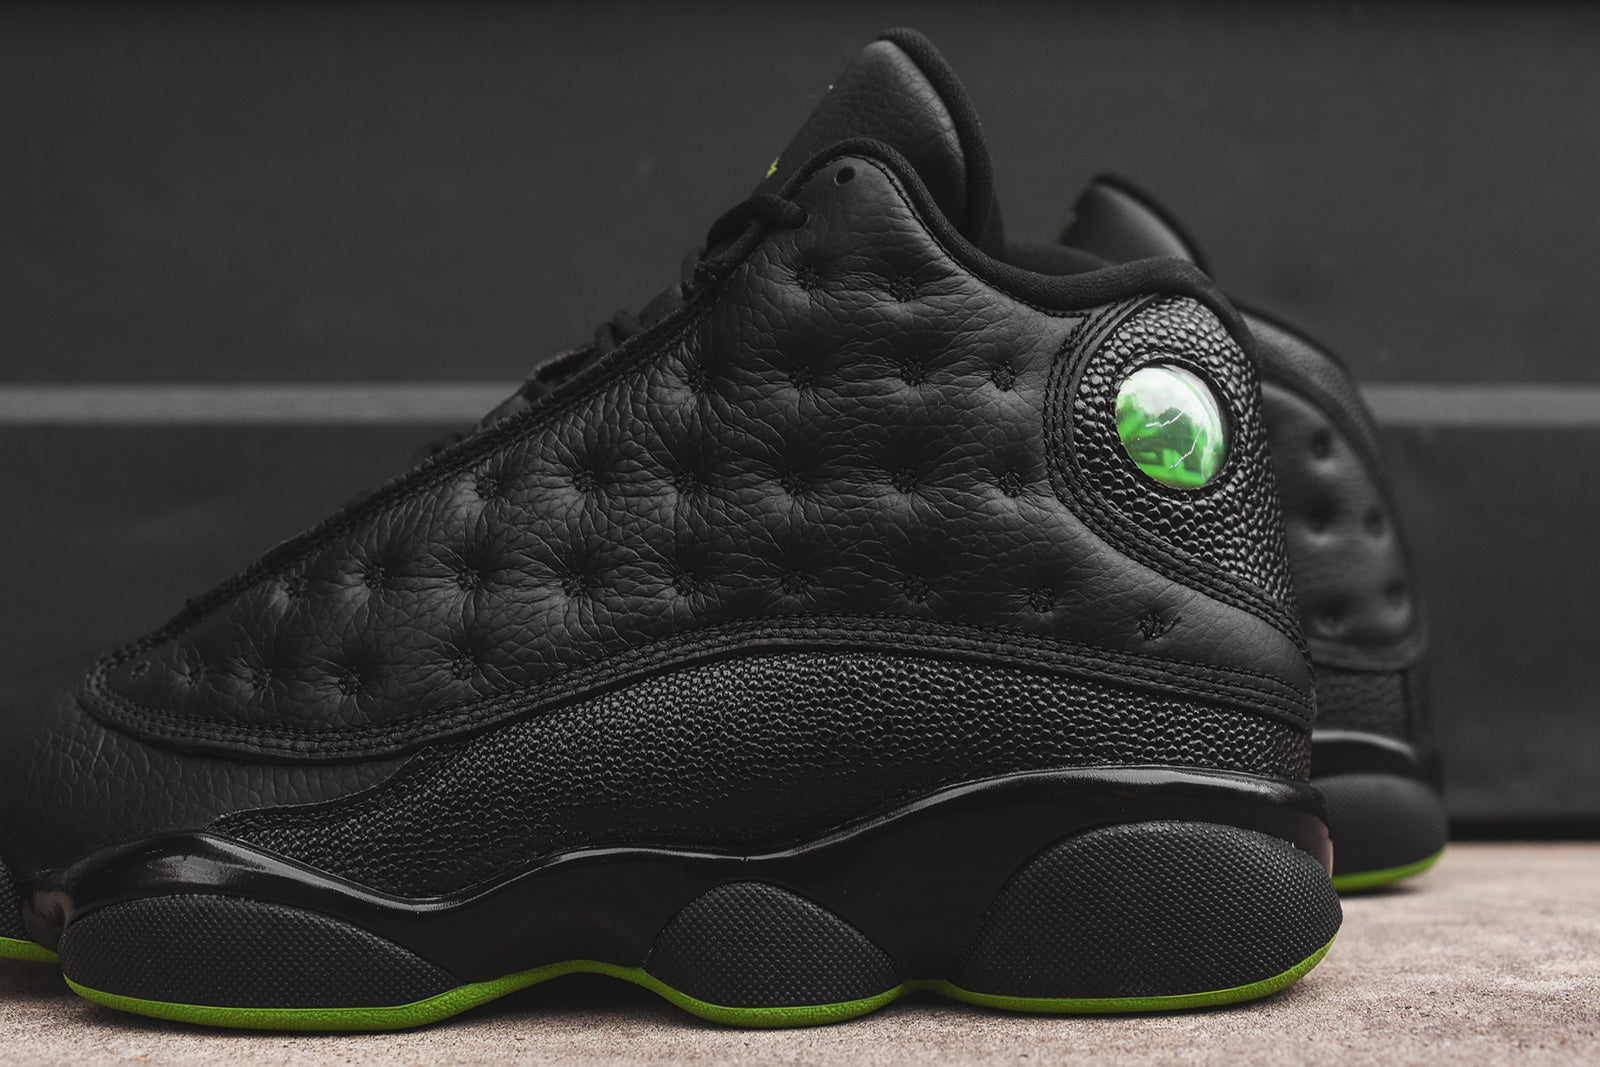 cheap for discount 6ec5c 2ea94 Nike Air Jordan 13 - Black / Green – Kith